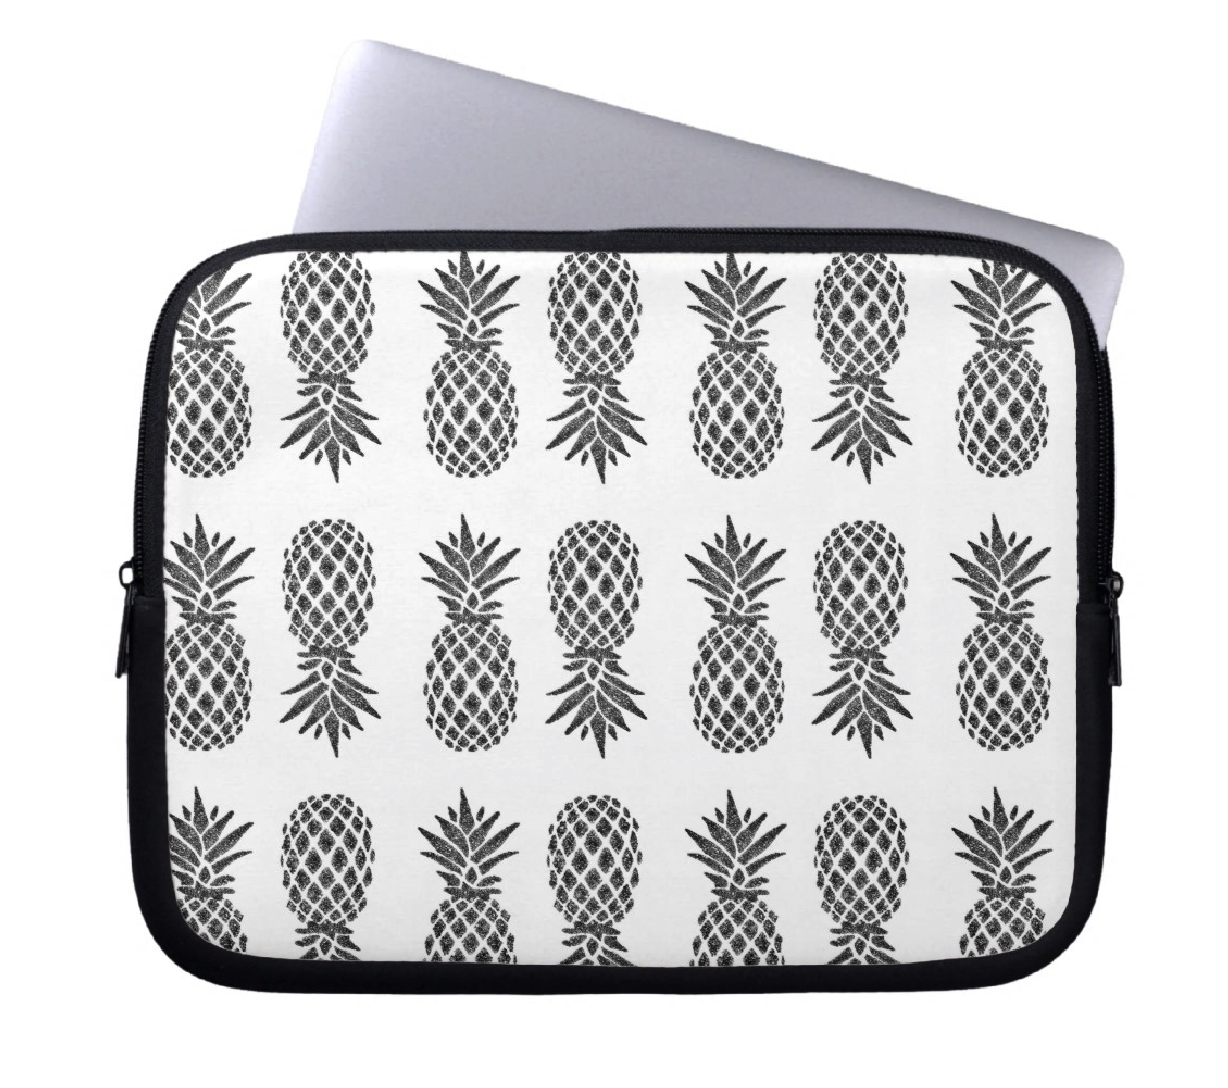 Laptop Sleeve - Pineapple - CRYSTAHHLED